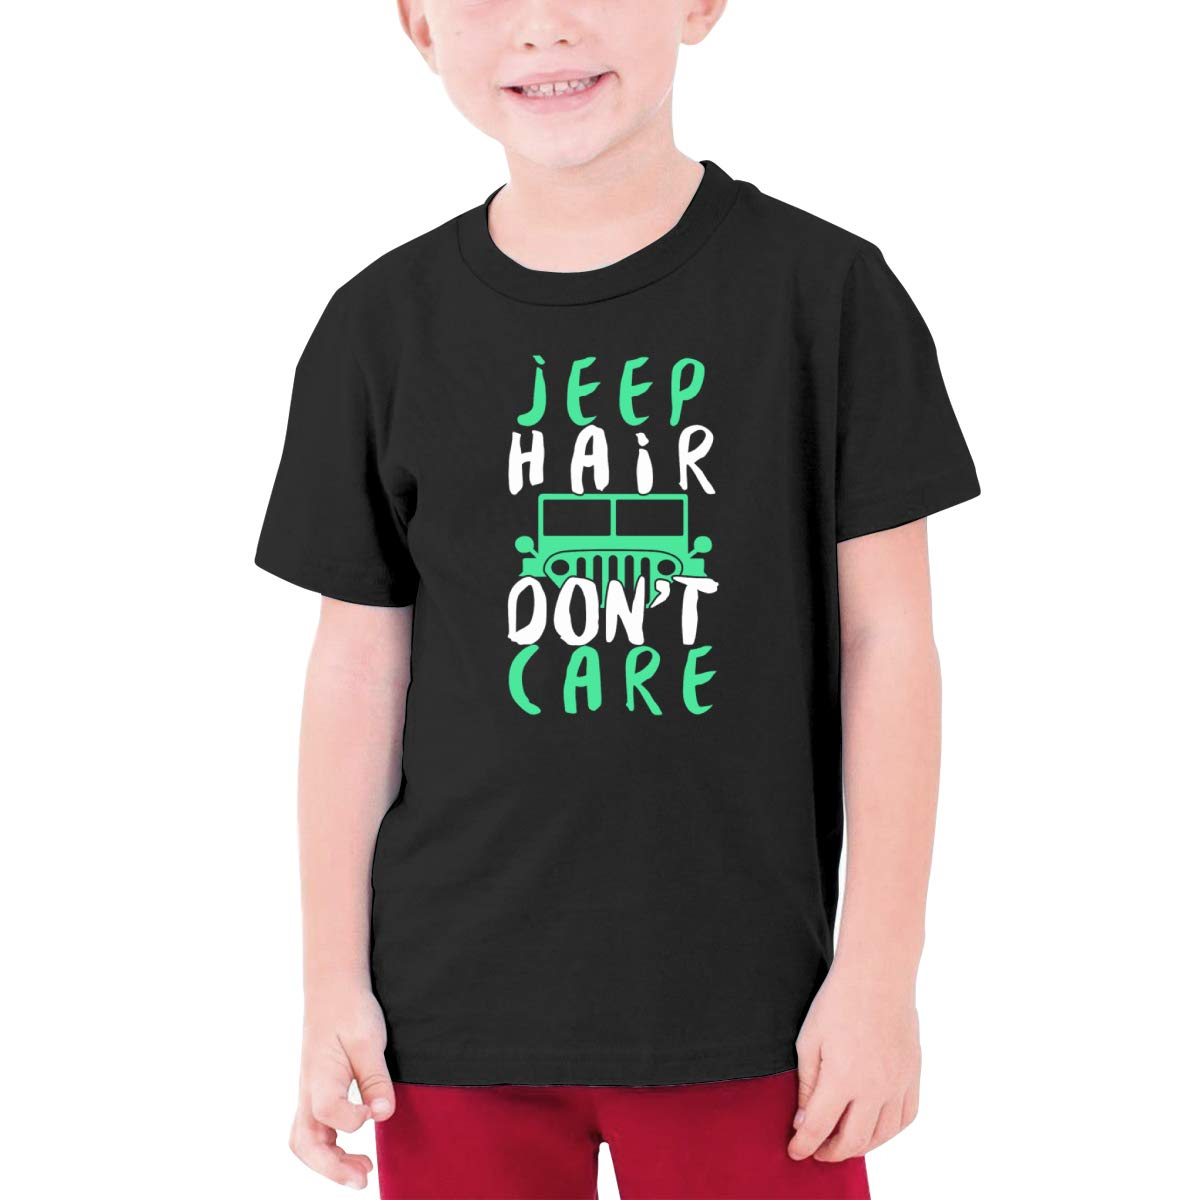 Jeep Hair Dont Care Boys Short-Sleeved T-Shirt